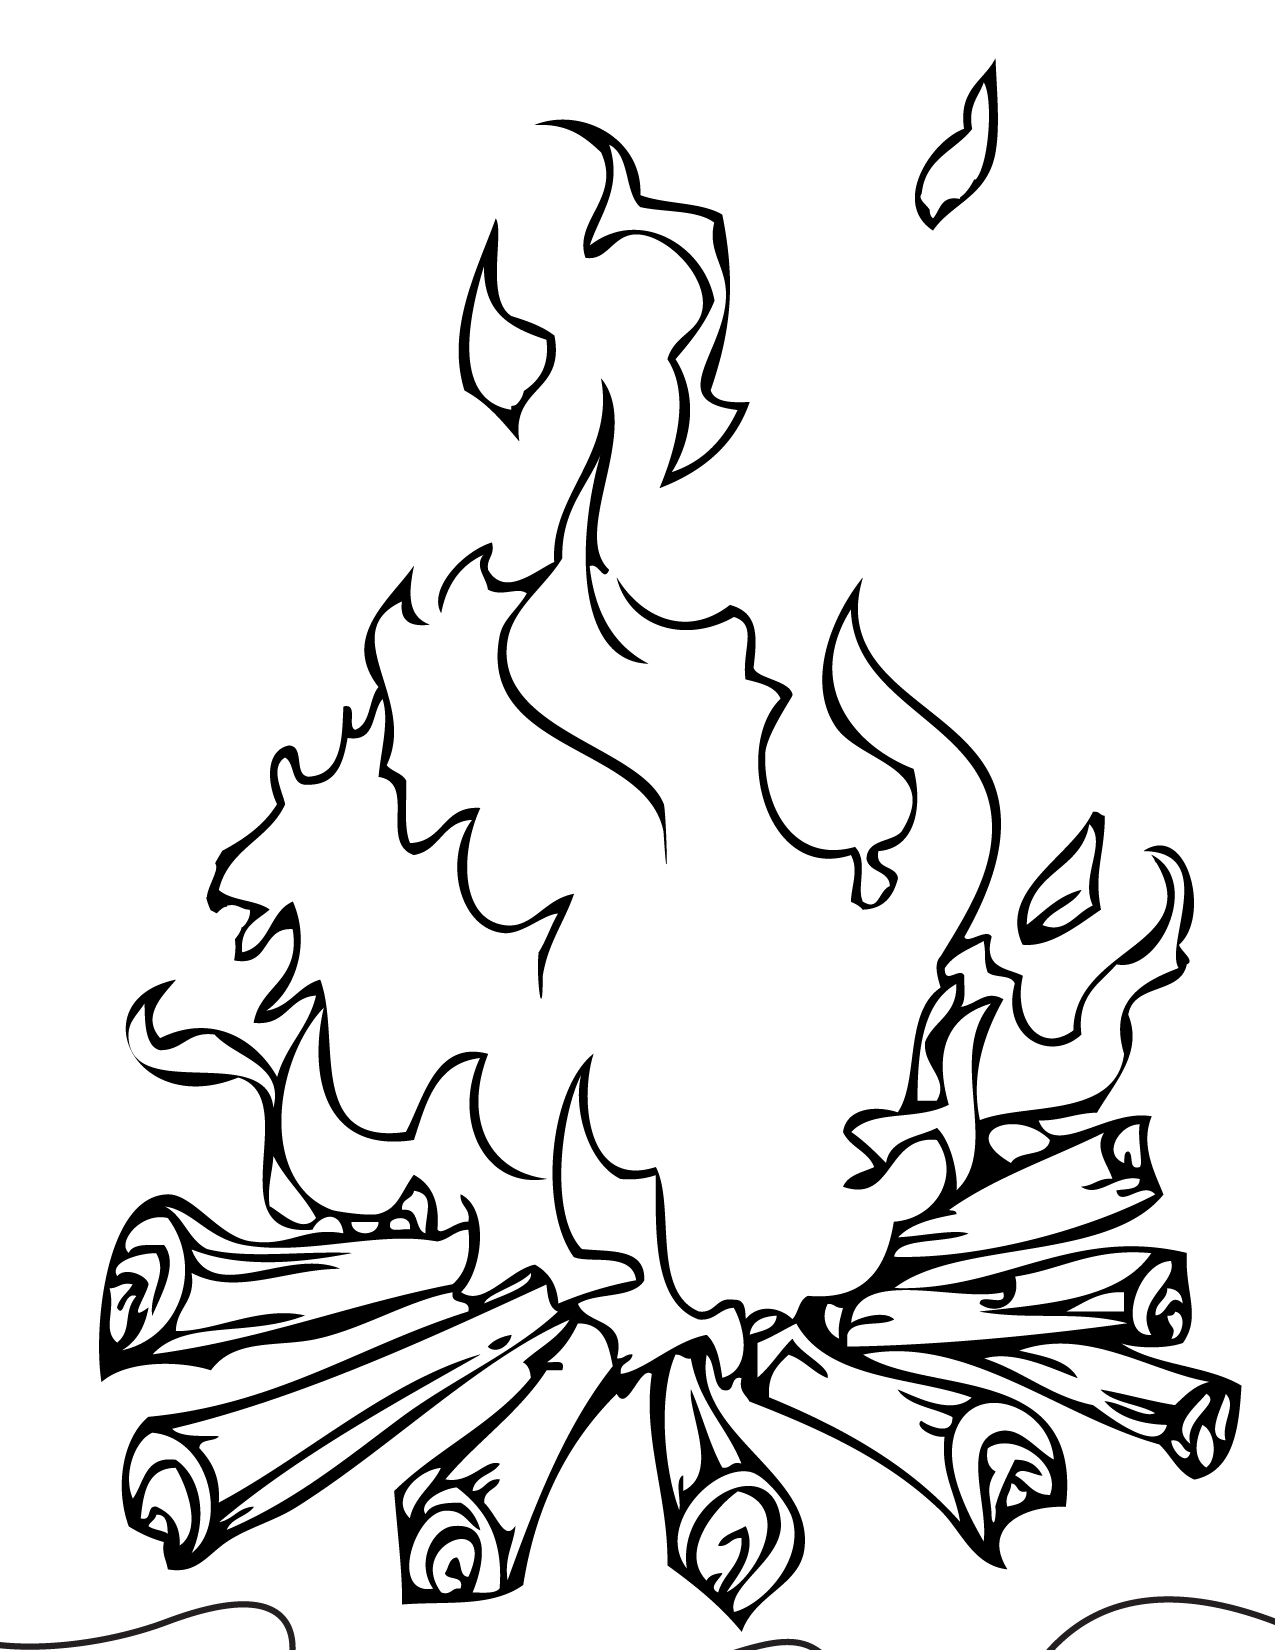 1275x1650 Fire Coloring Page Campfire Handipoints And Pages Bloodbrothers Me